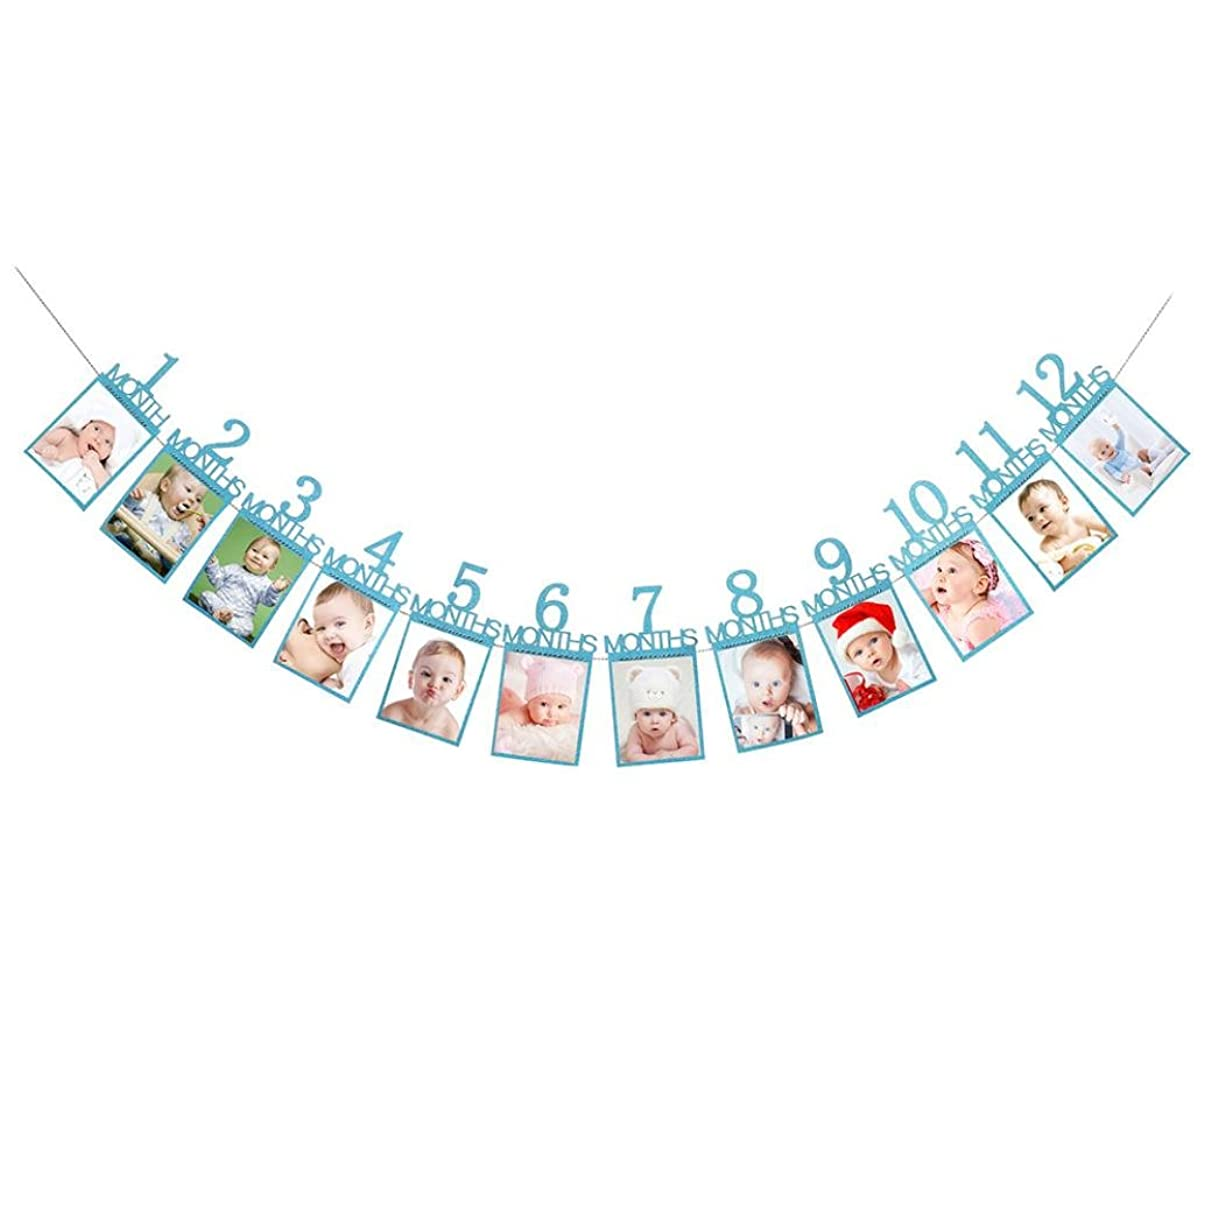 Coohole 1-12 Month Photo Banner Monthly Photo Wall Kids Birthday Gift Decorations